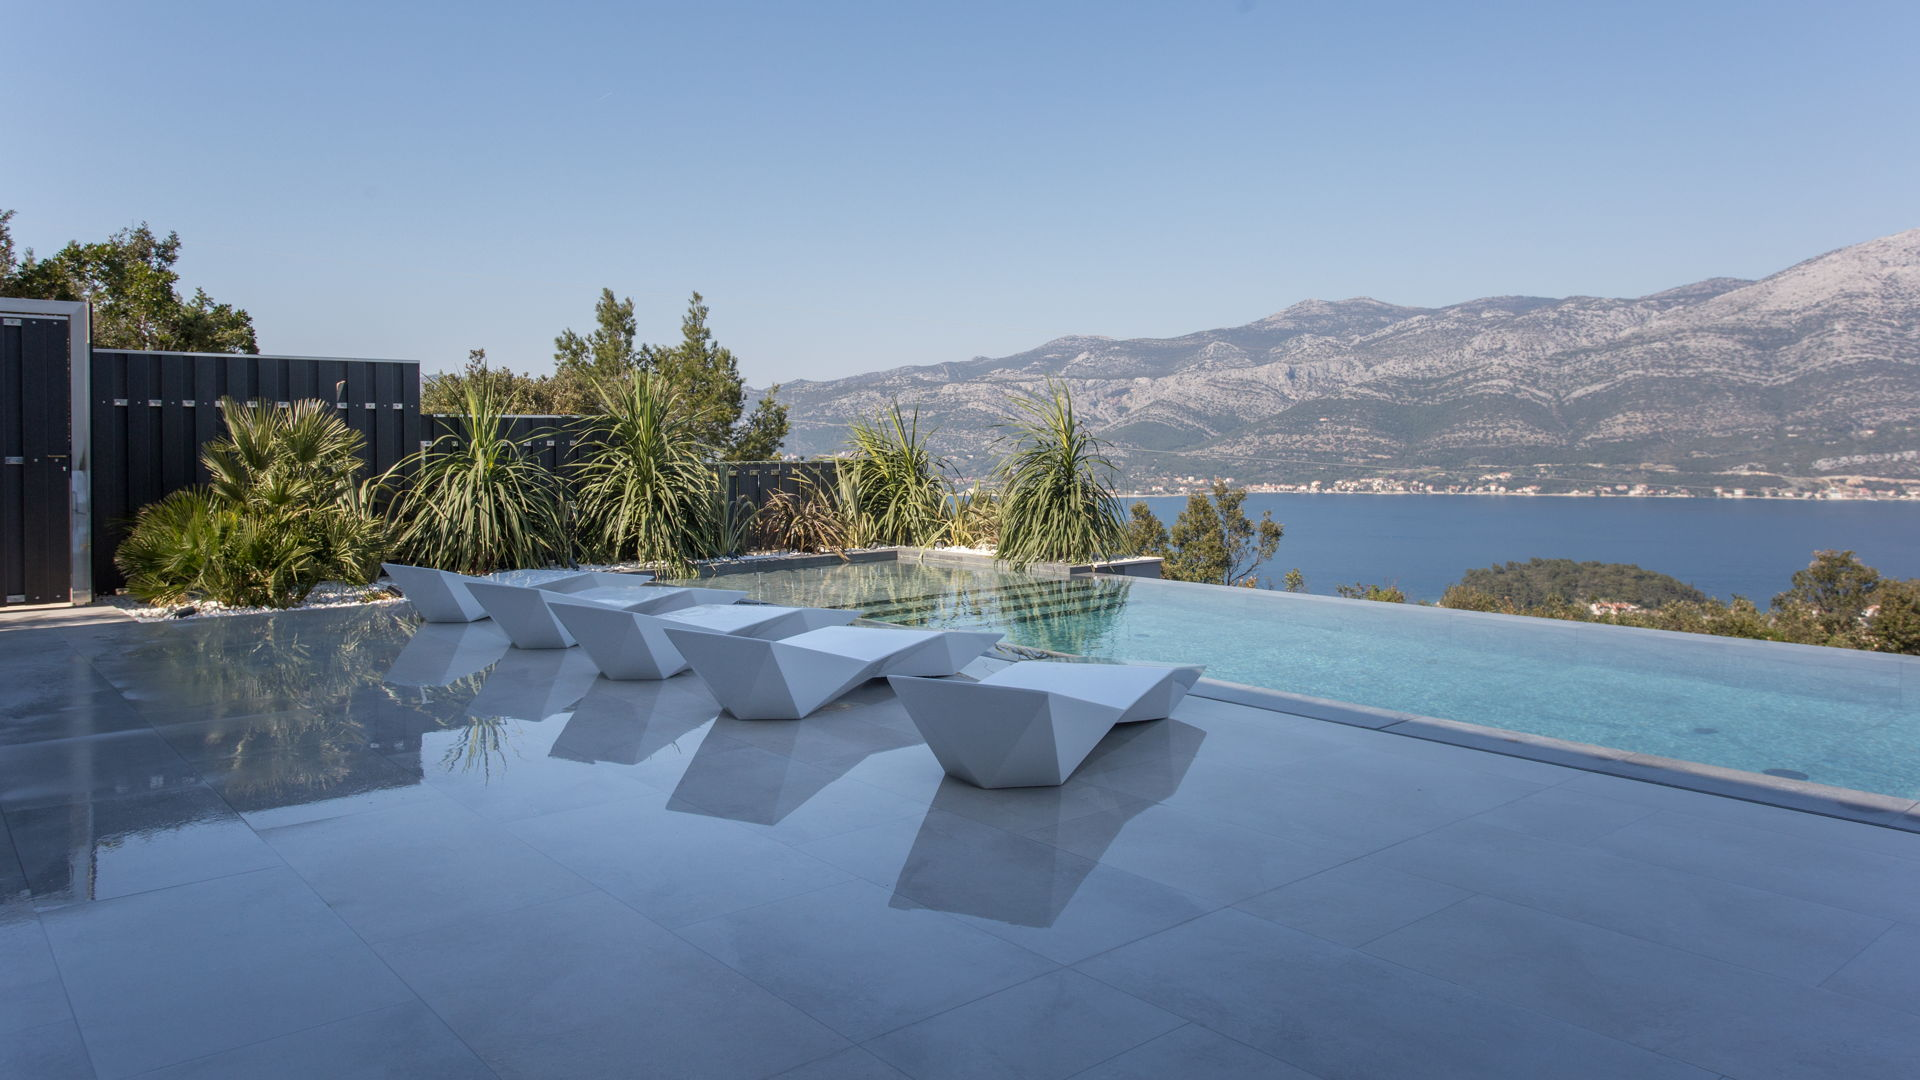 Views of the Ocean from one of the Infinity Pools at the Villa Korcula Diamond